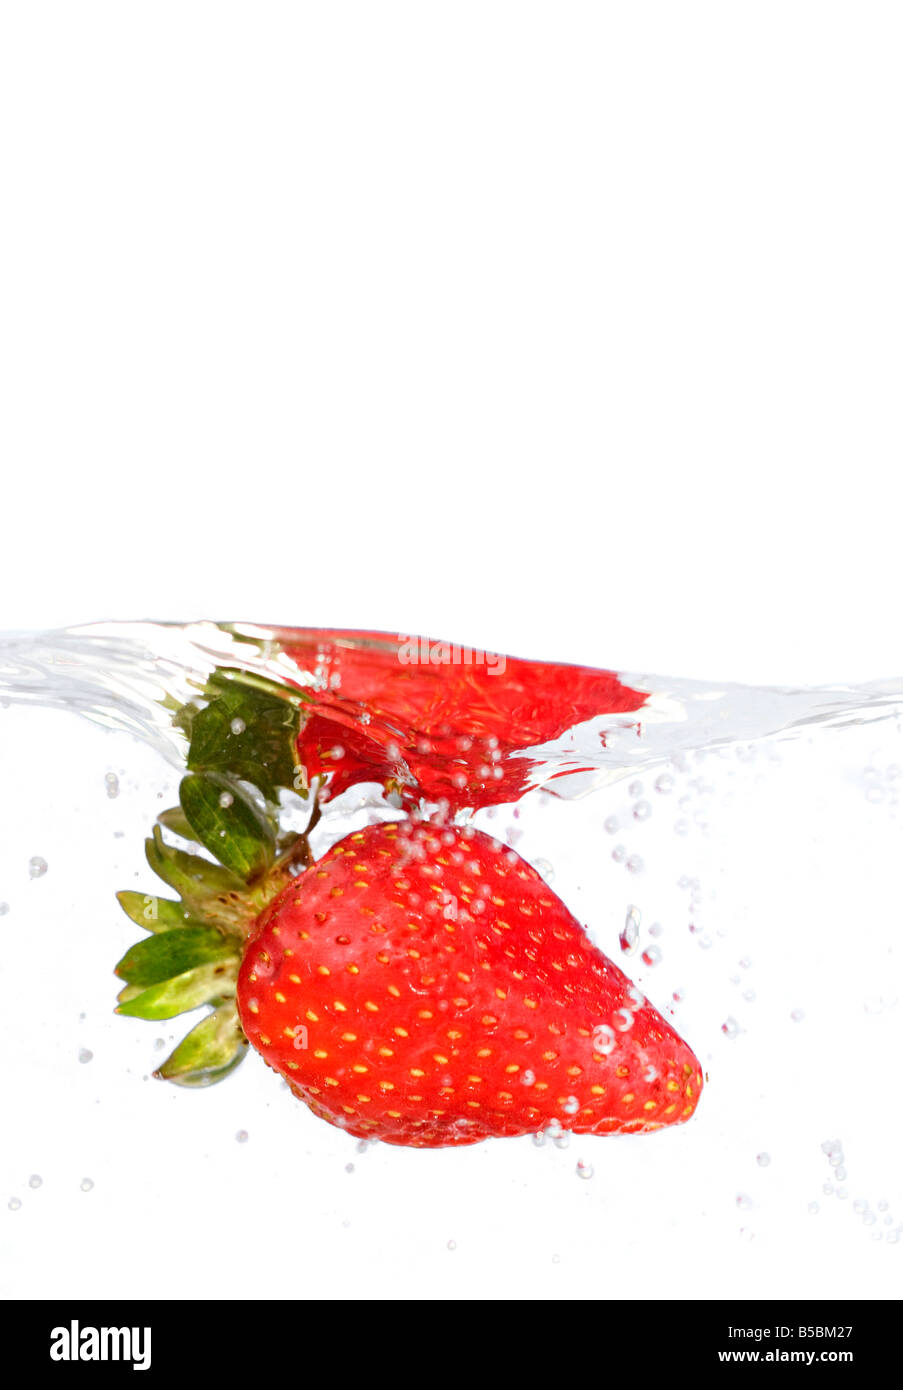 A juicy red strawberry plunging into some water Shallow depth of field - Stock Image